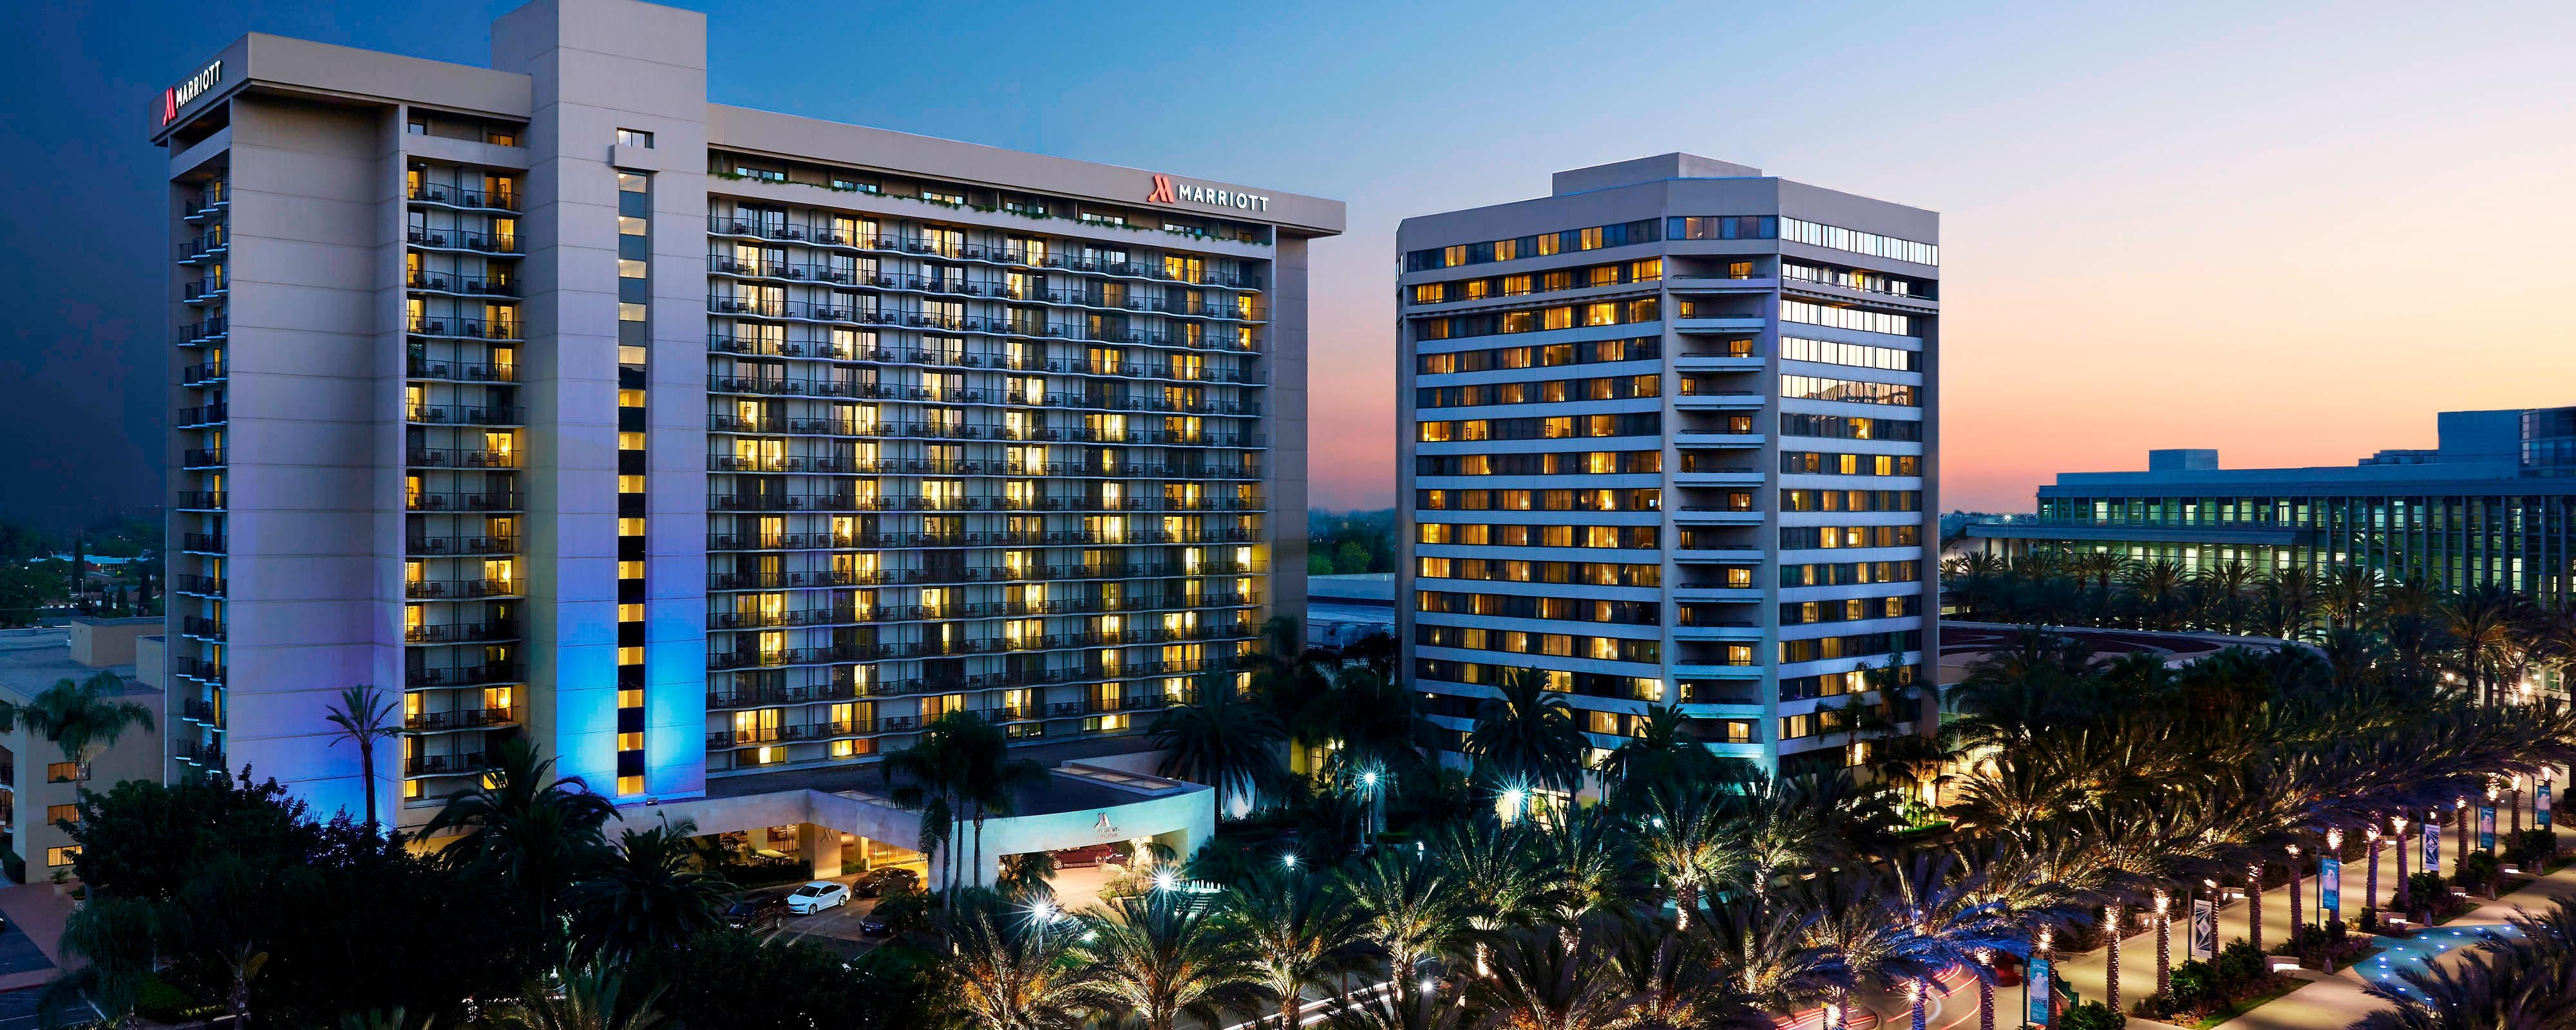 Anaheim Marriott at Dusk